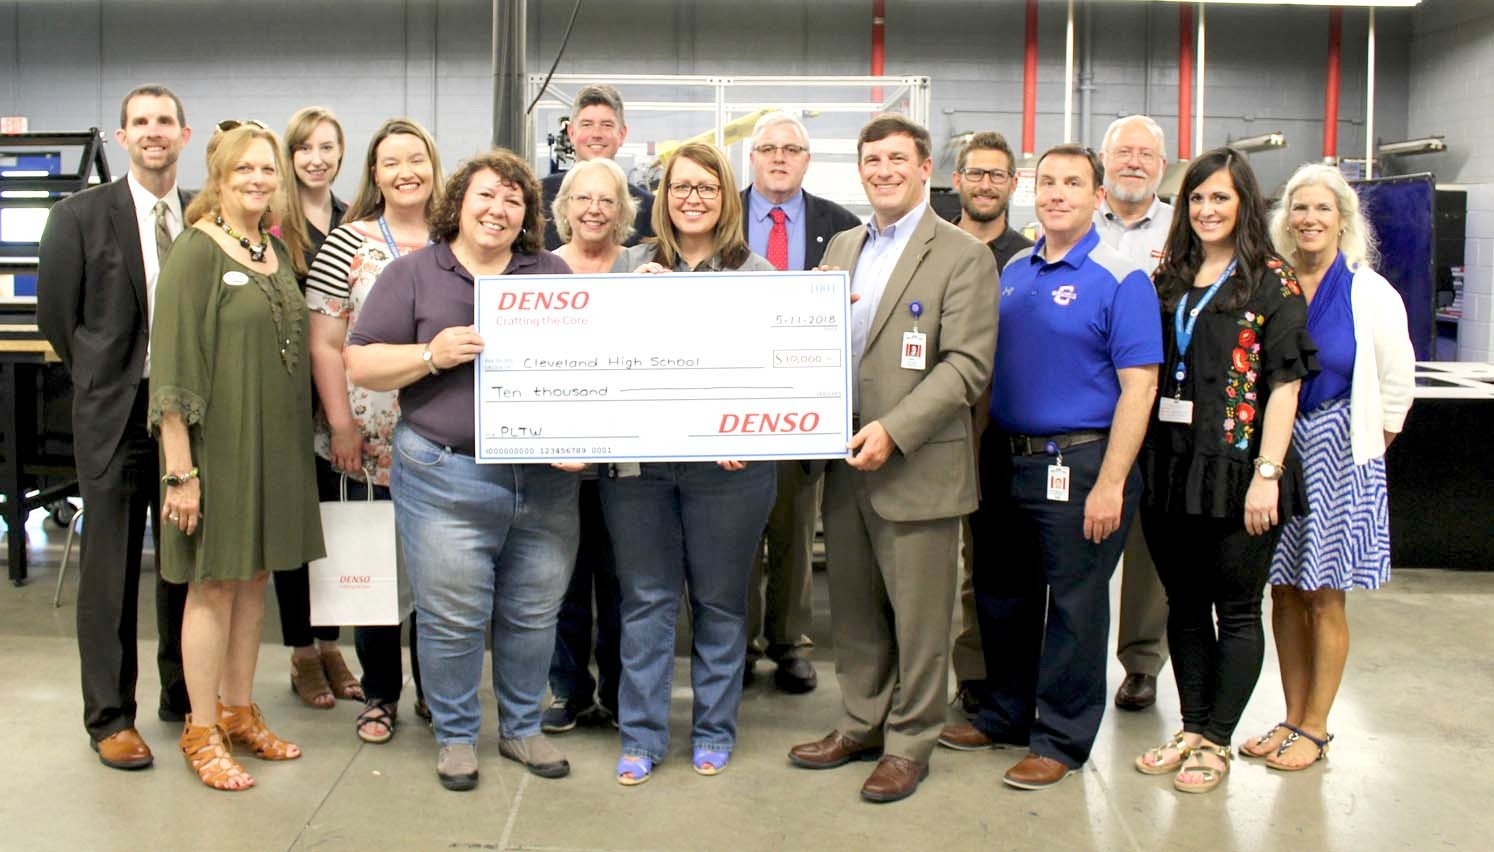 REPRESENTATIVES of Cleveland City Schools, DENSO and the Cleveland/Bradley Chamber of Commerce gathered at Cleveland High School Friday to celebrate a grant presentation. DENSO has awarded CHS a $10,000 grant for the third year in a row.